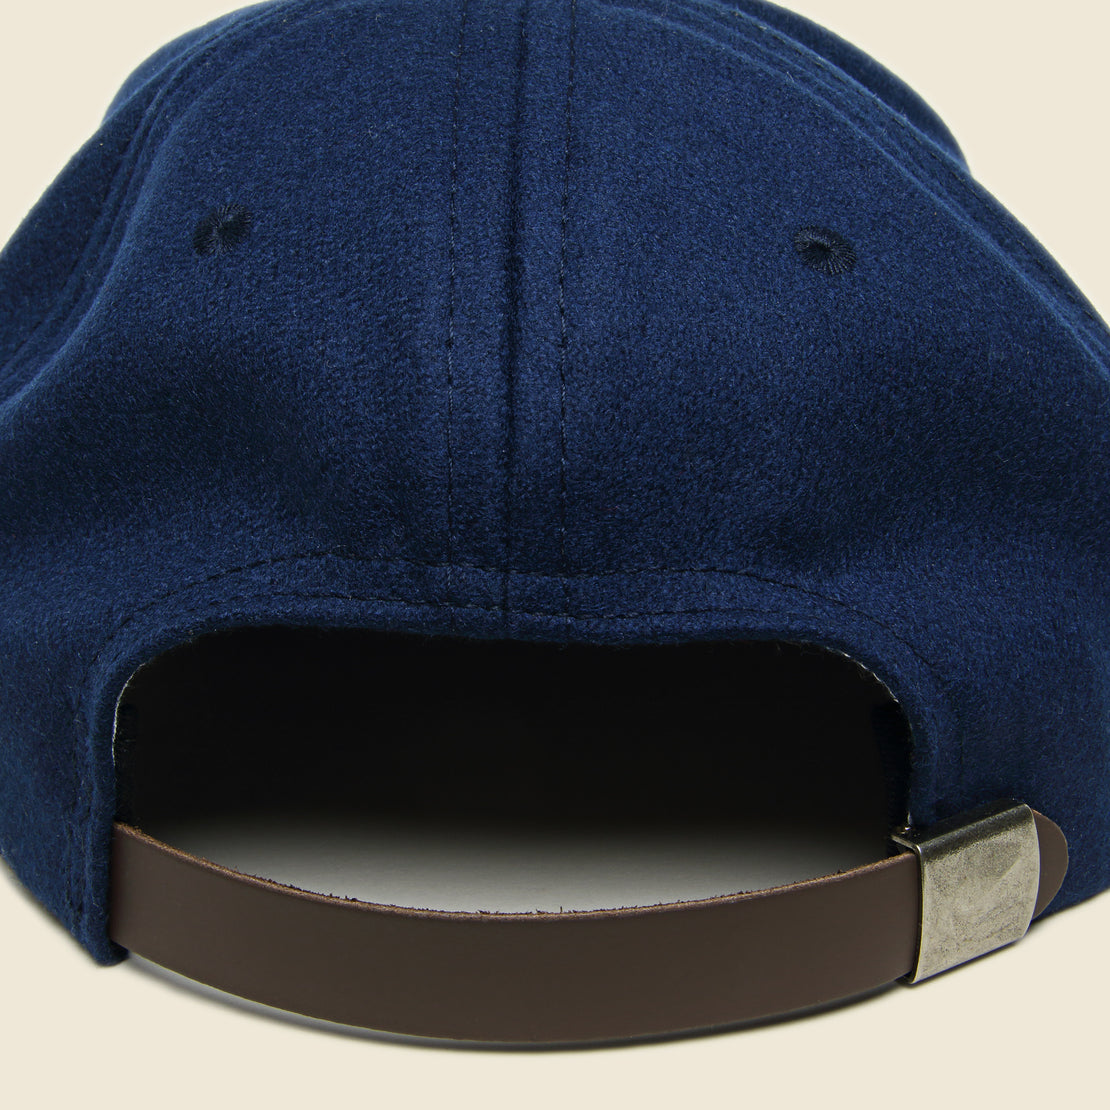 STAG Exclusive Austin Senators Hat - Navy - Ebbets Field Flannels - STAG Provisions - Accessories - Hats